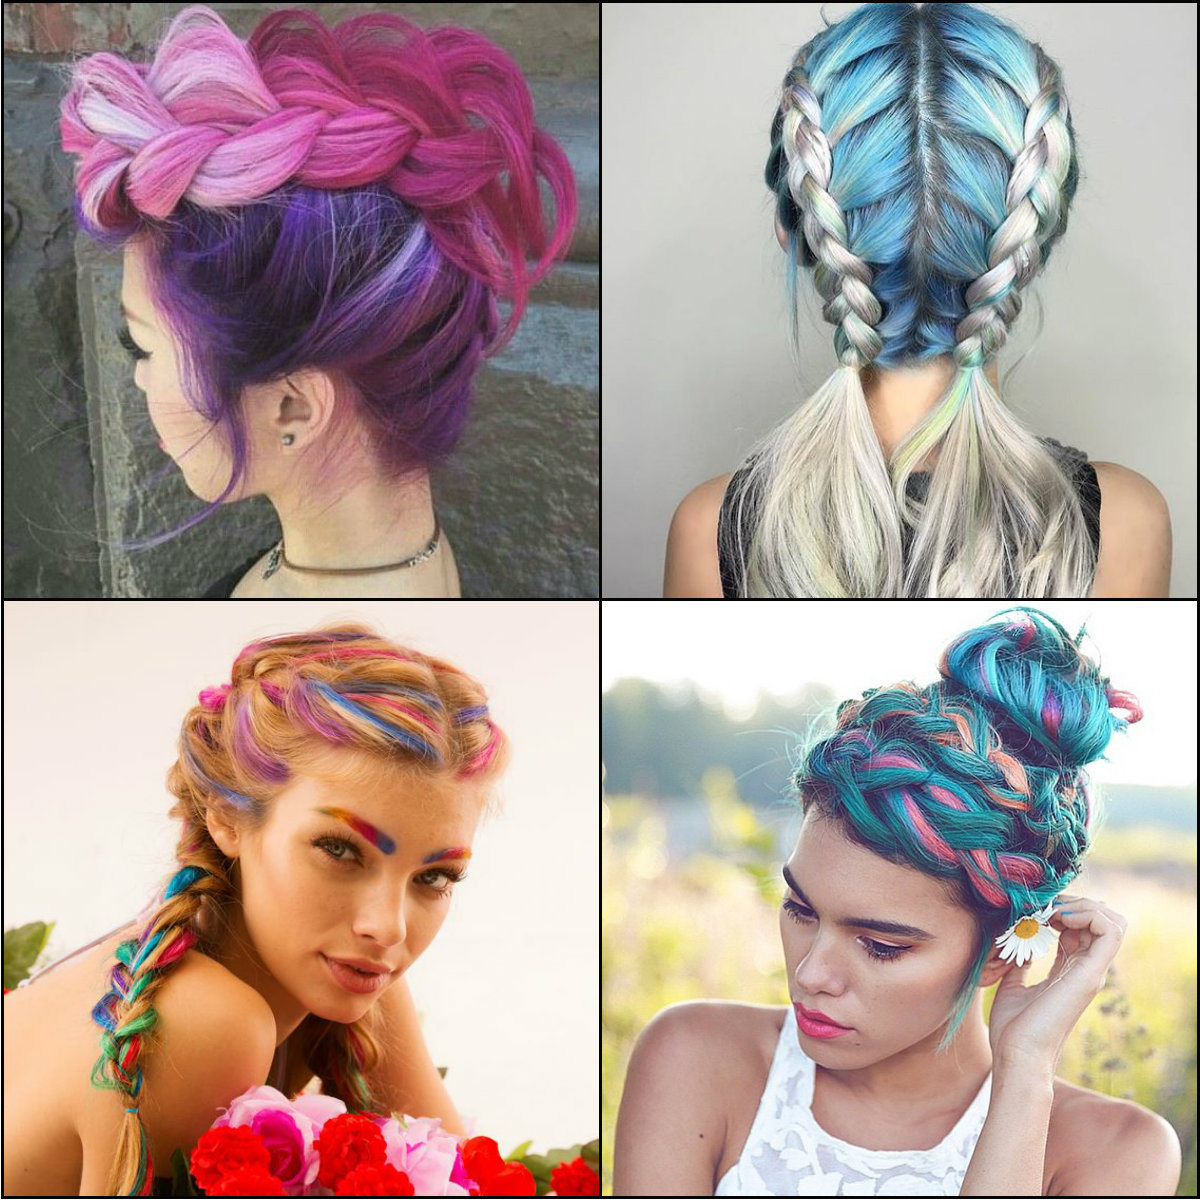 Hairstyles 2017, Hair Colors And Haircuts (View 7 of 20)